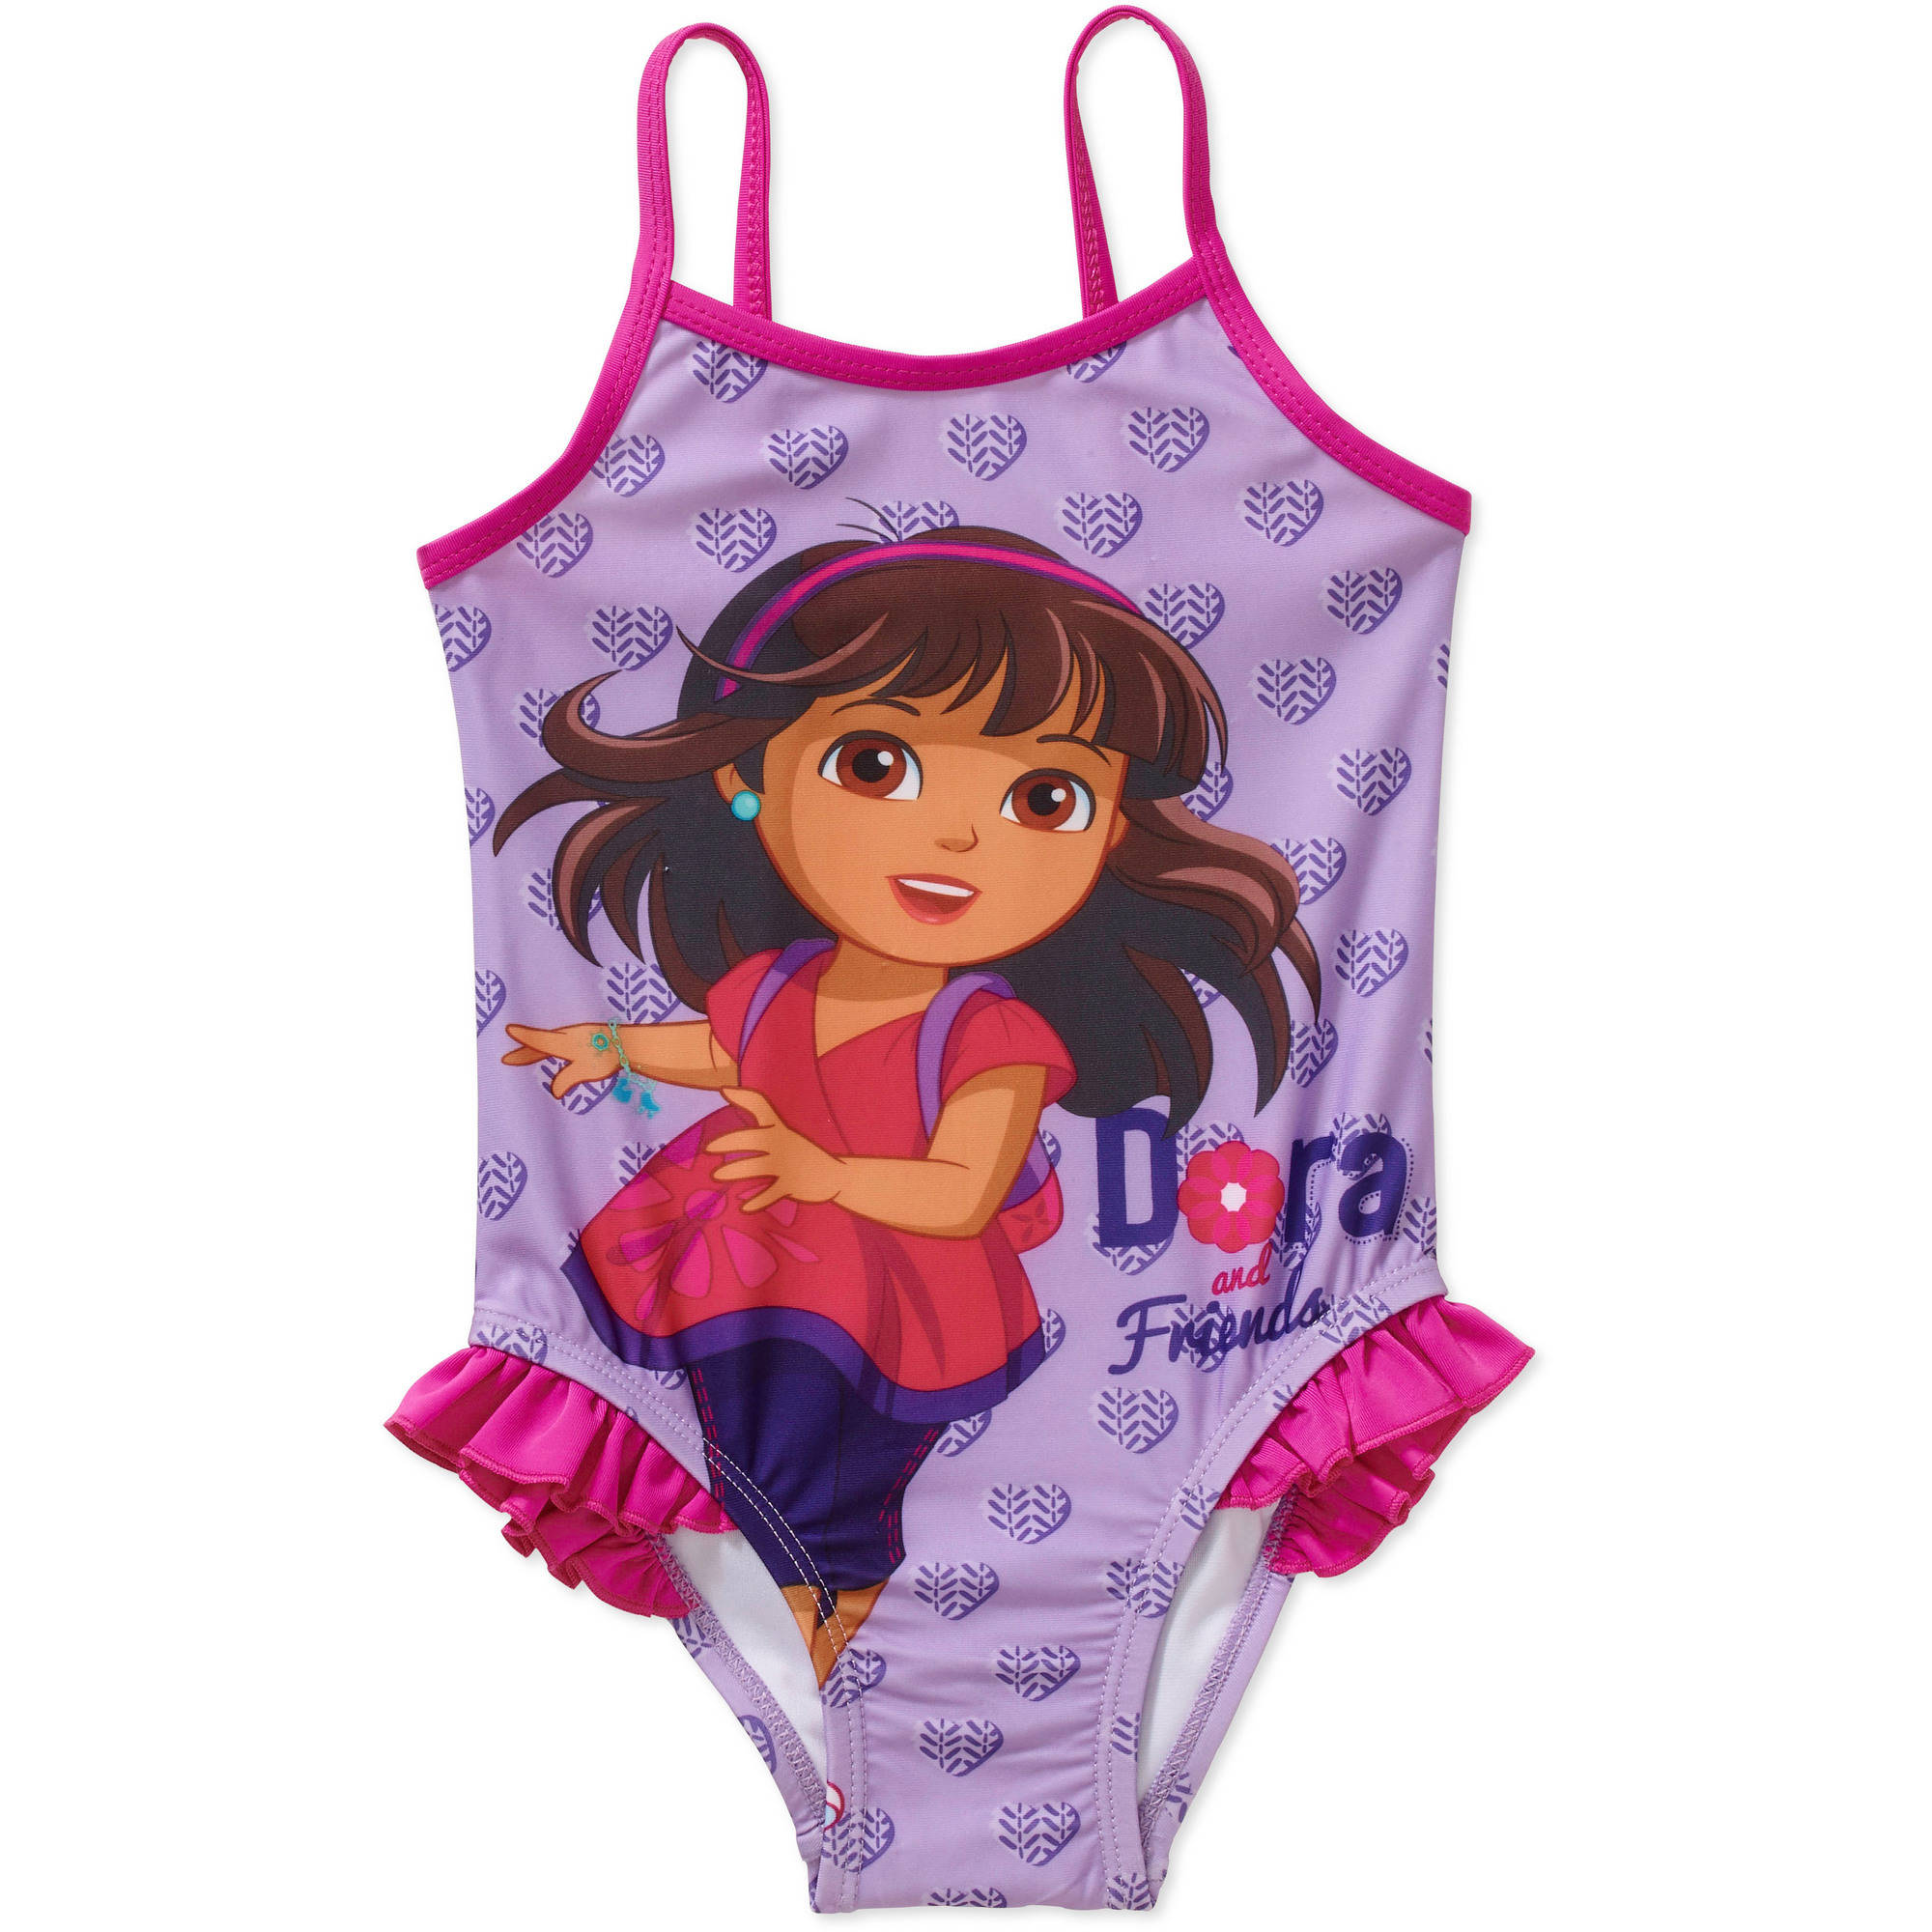 Dora the Explorer and Friends Toddler Girl 1-Piece Swimsuit